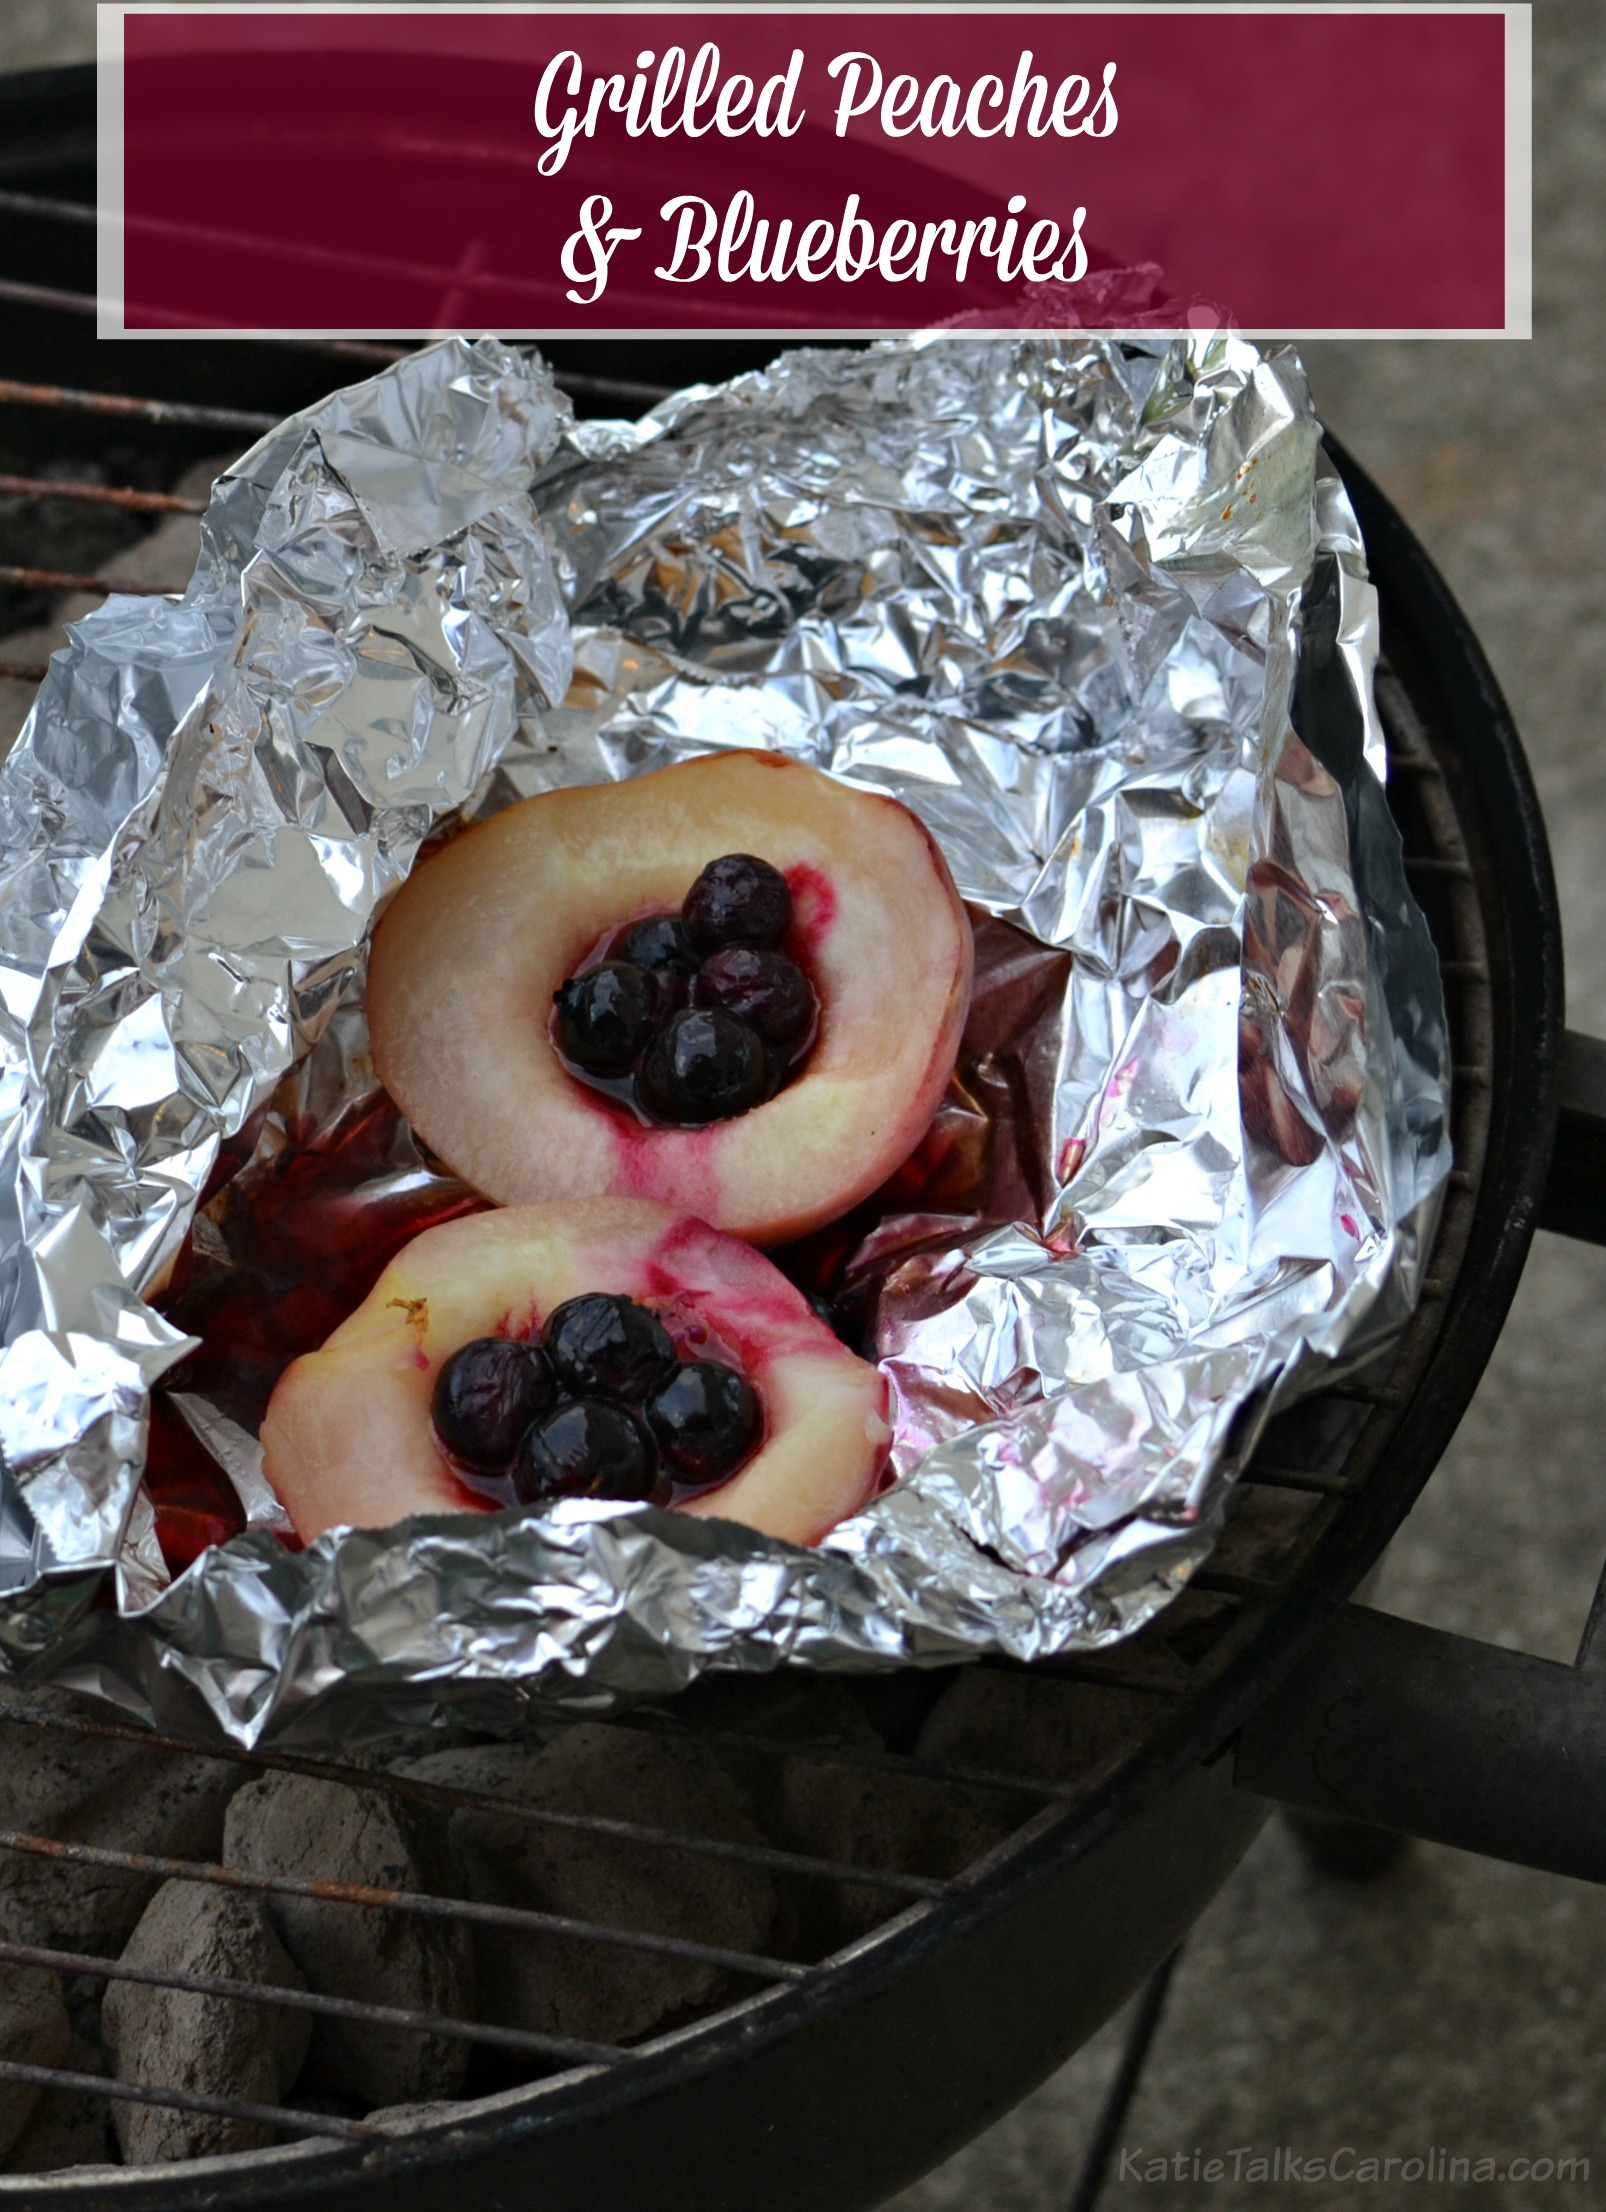 Grilled peaches and blueberries